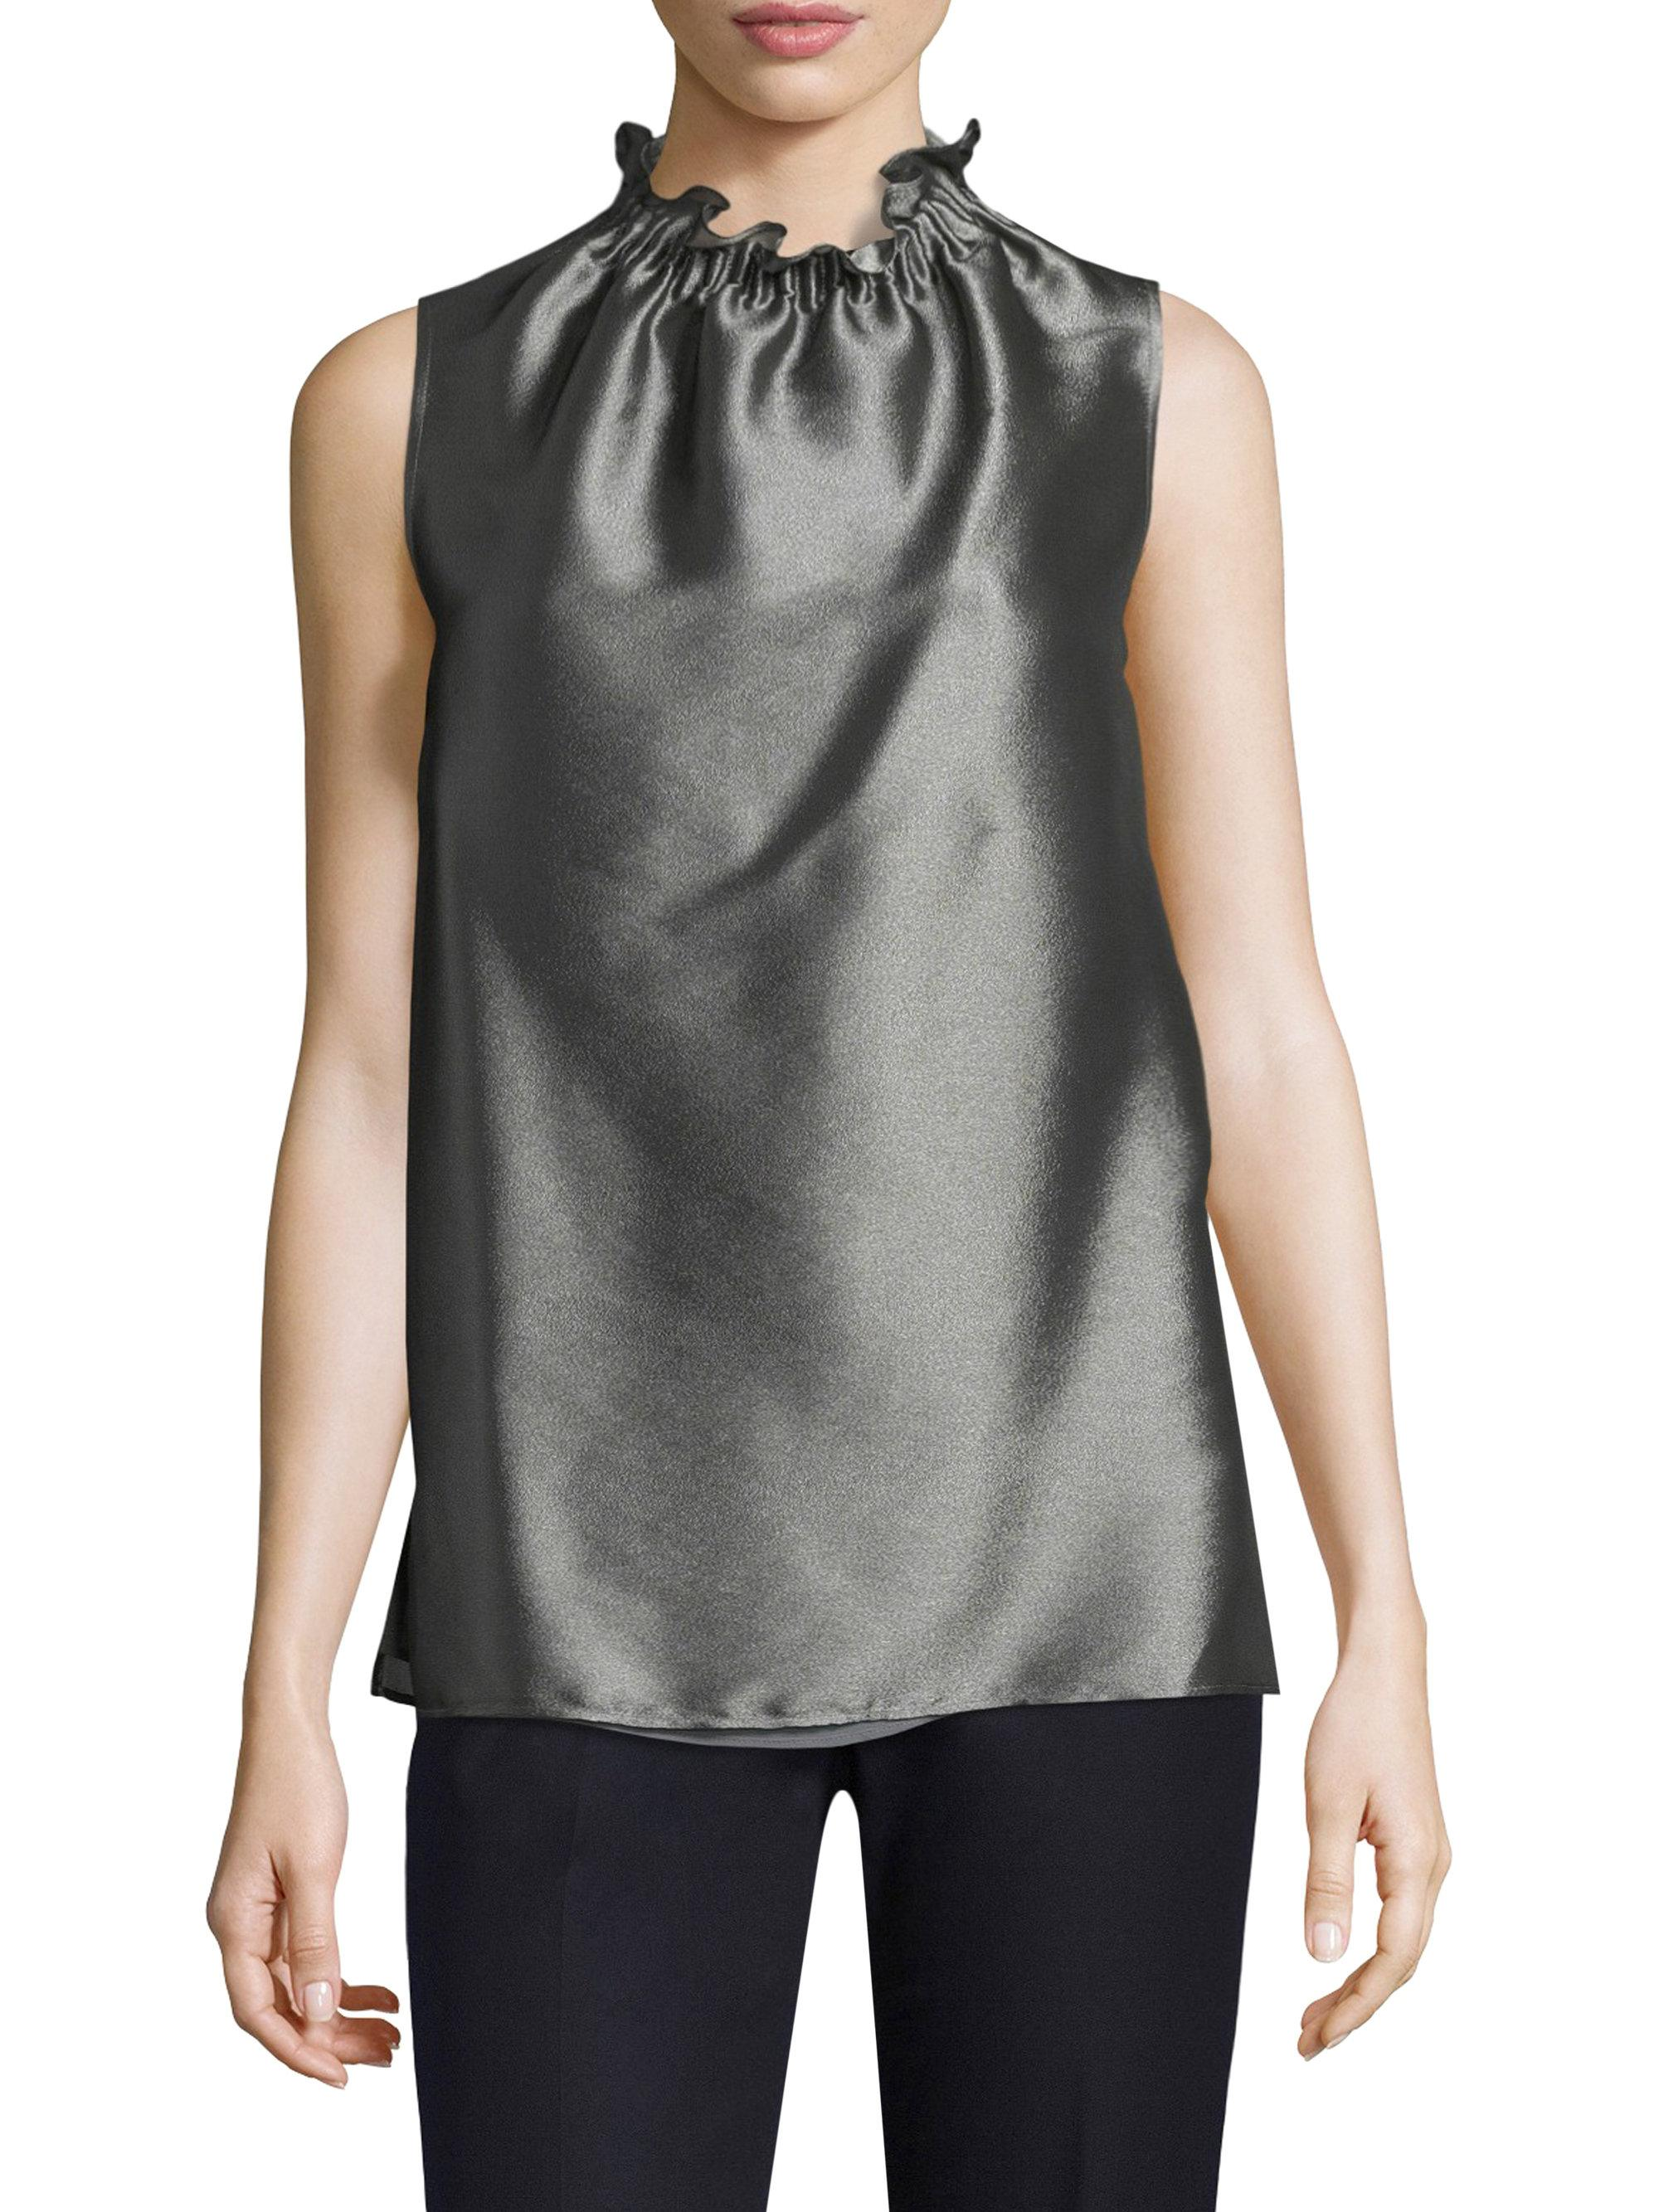 148 Best Images About Fingernail Art On Pinterest: Lafayette 148 New York Percy Sleeveless Top In Black